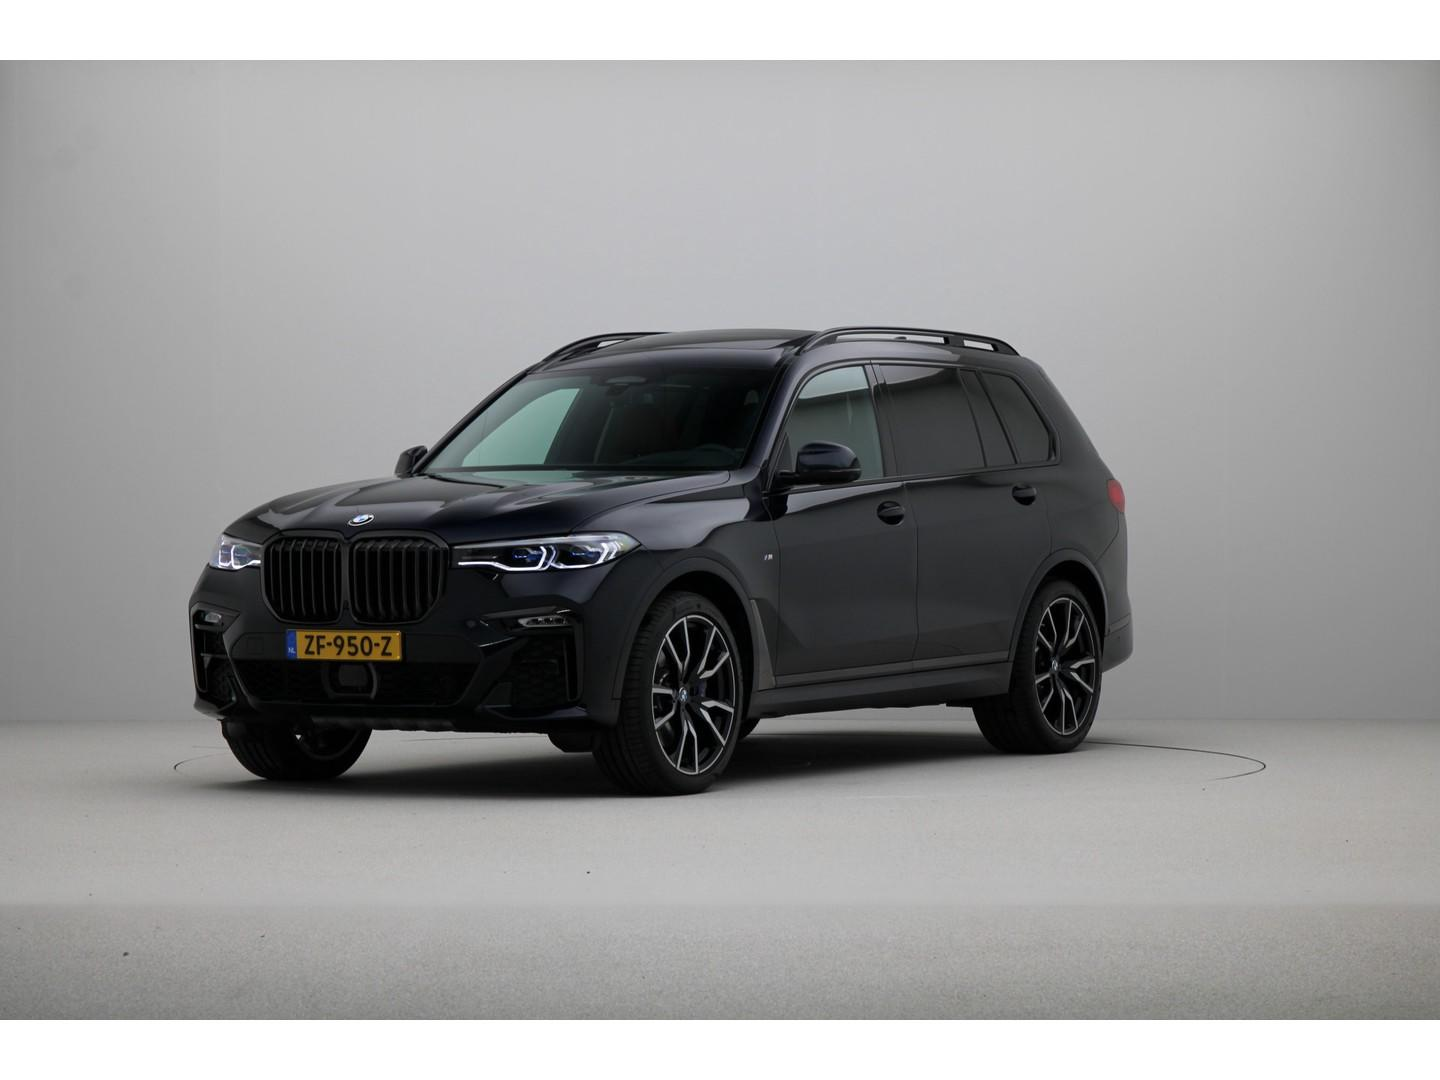 Bmw X7 4.0i xdrive high executive m-sport